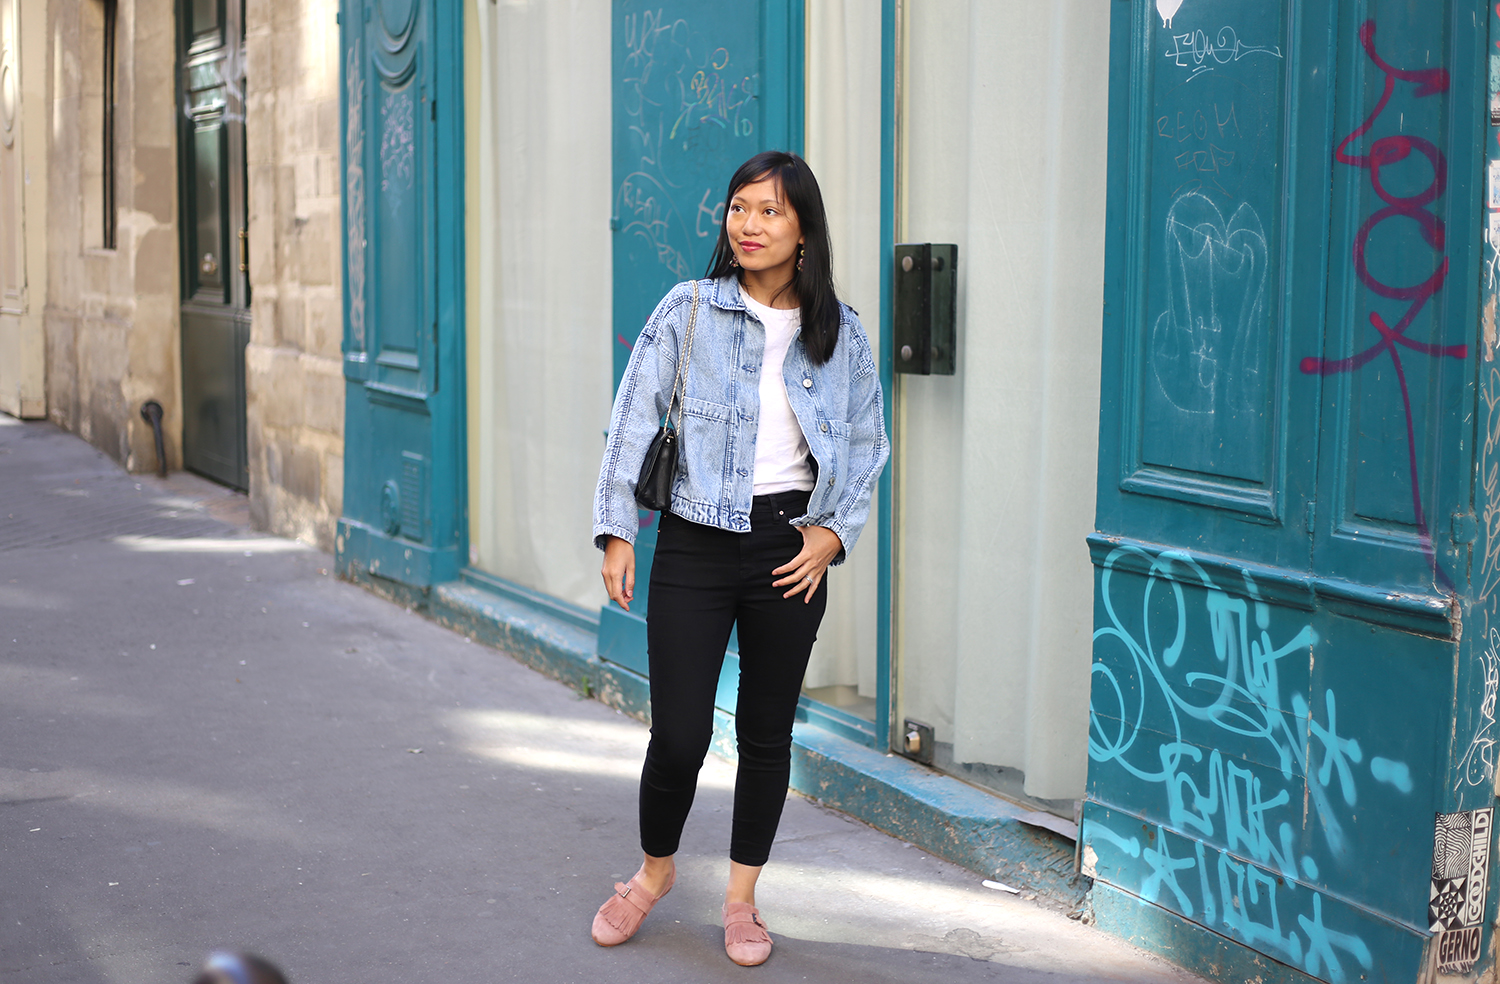 petite-and-so-what-derbies-mz-made-for-petite